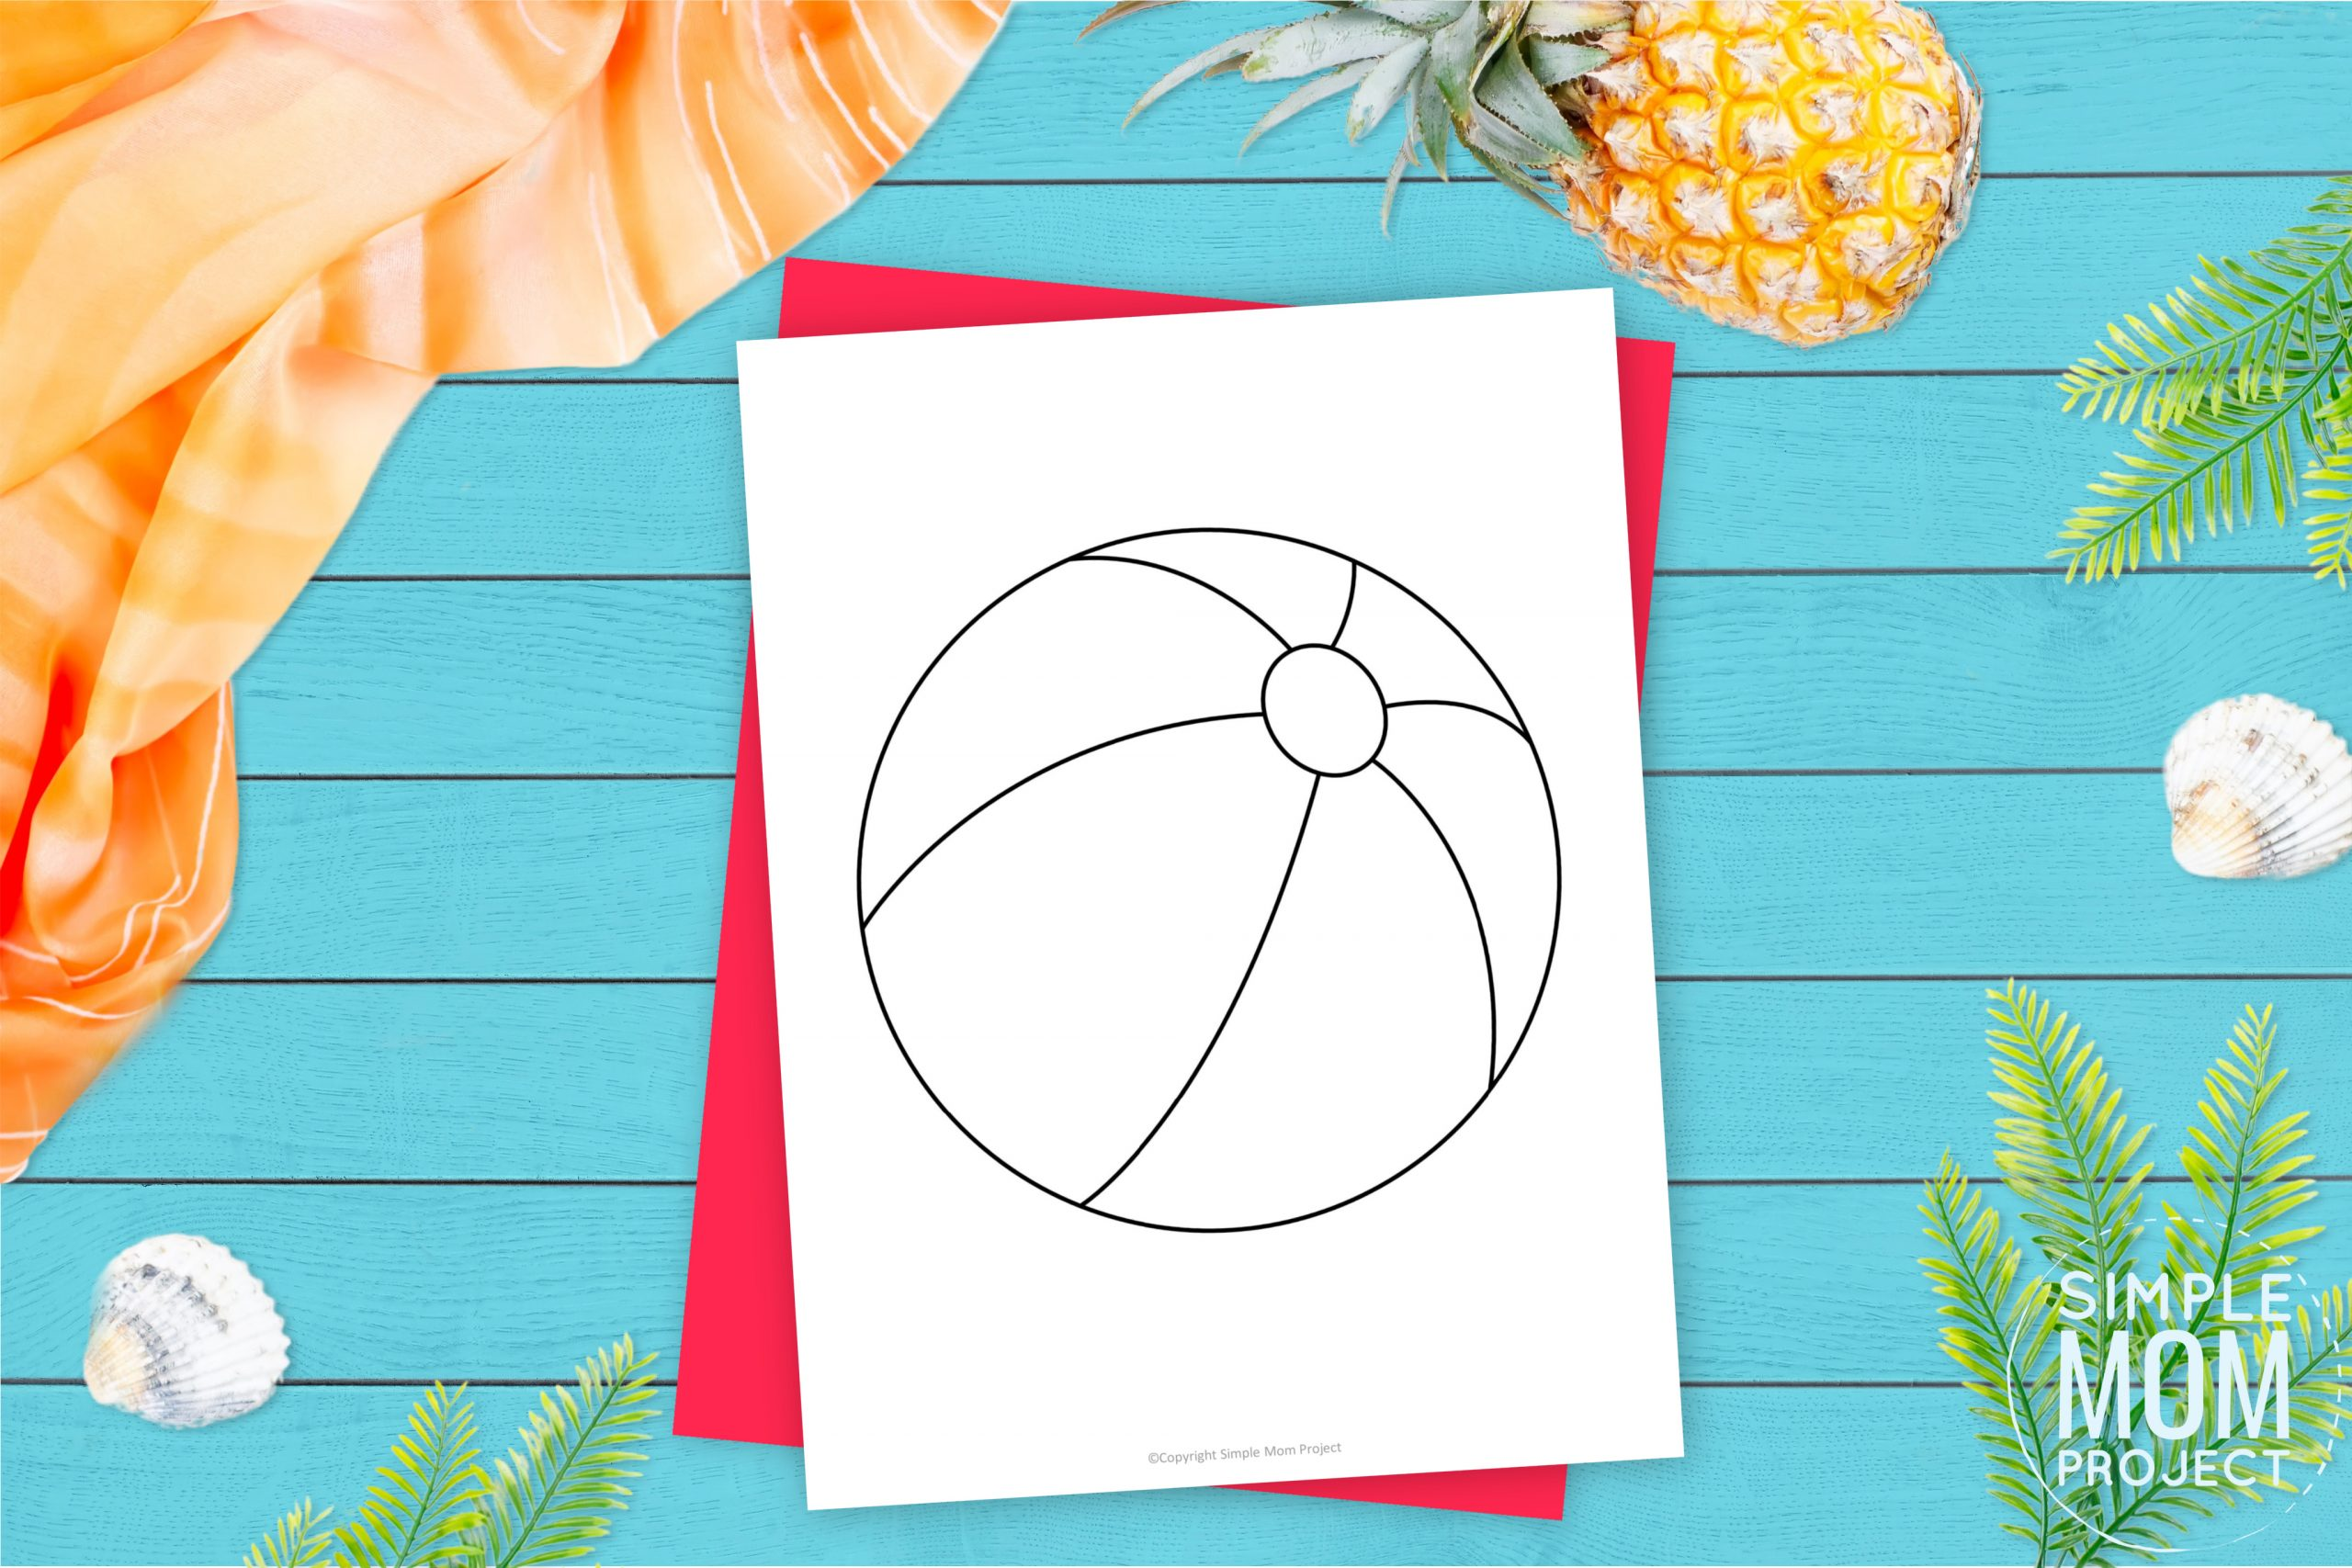 Free Printable Beach Ball Template Simple Mom Project